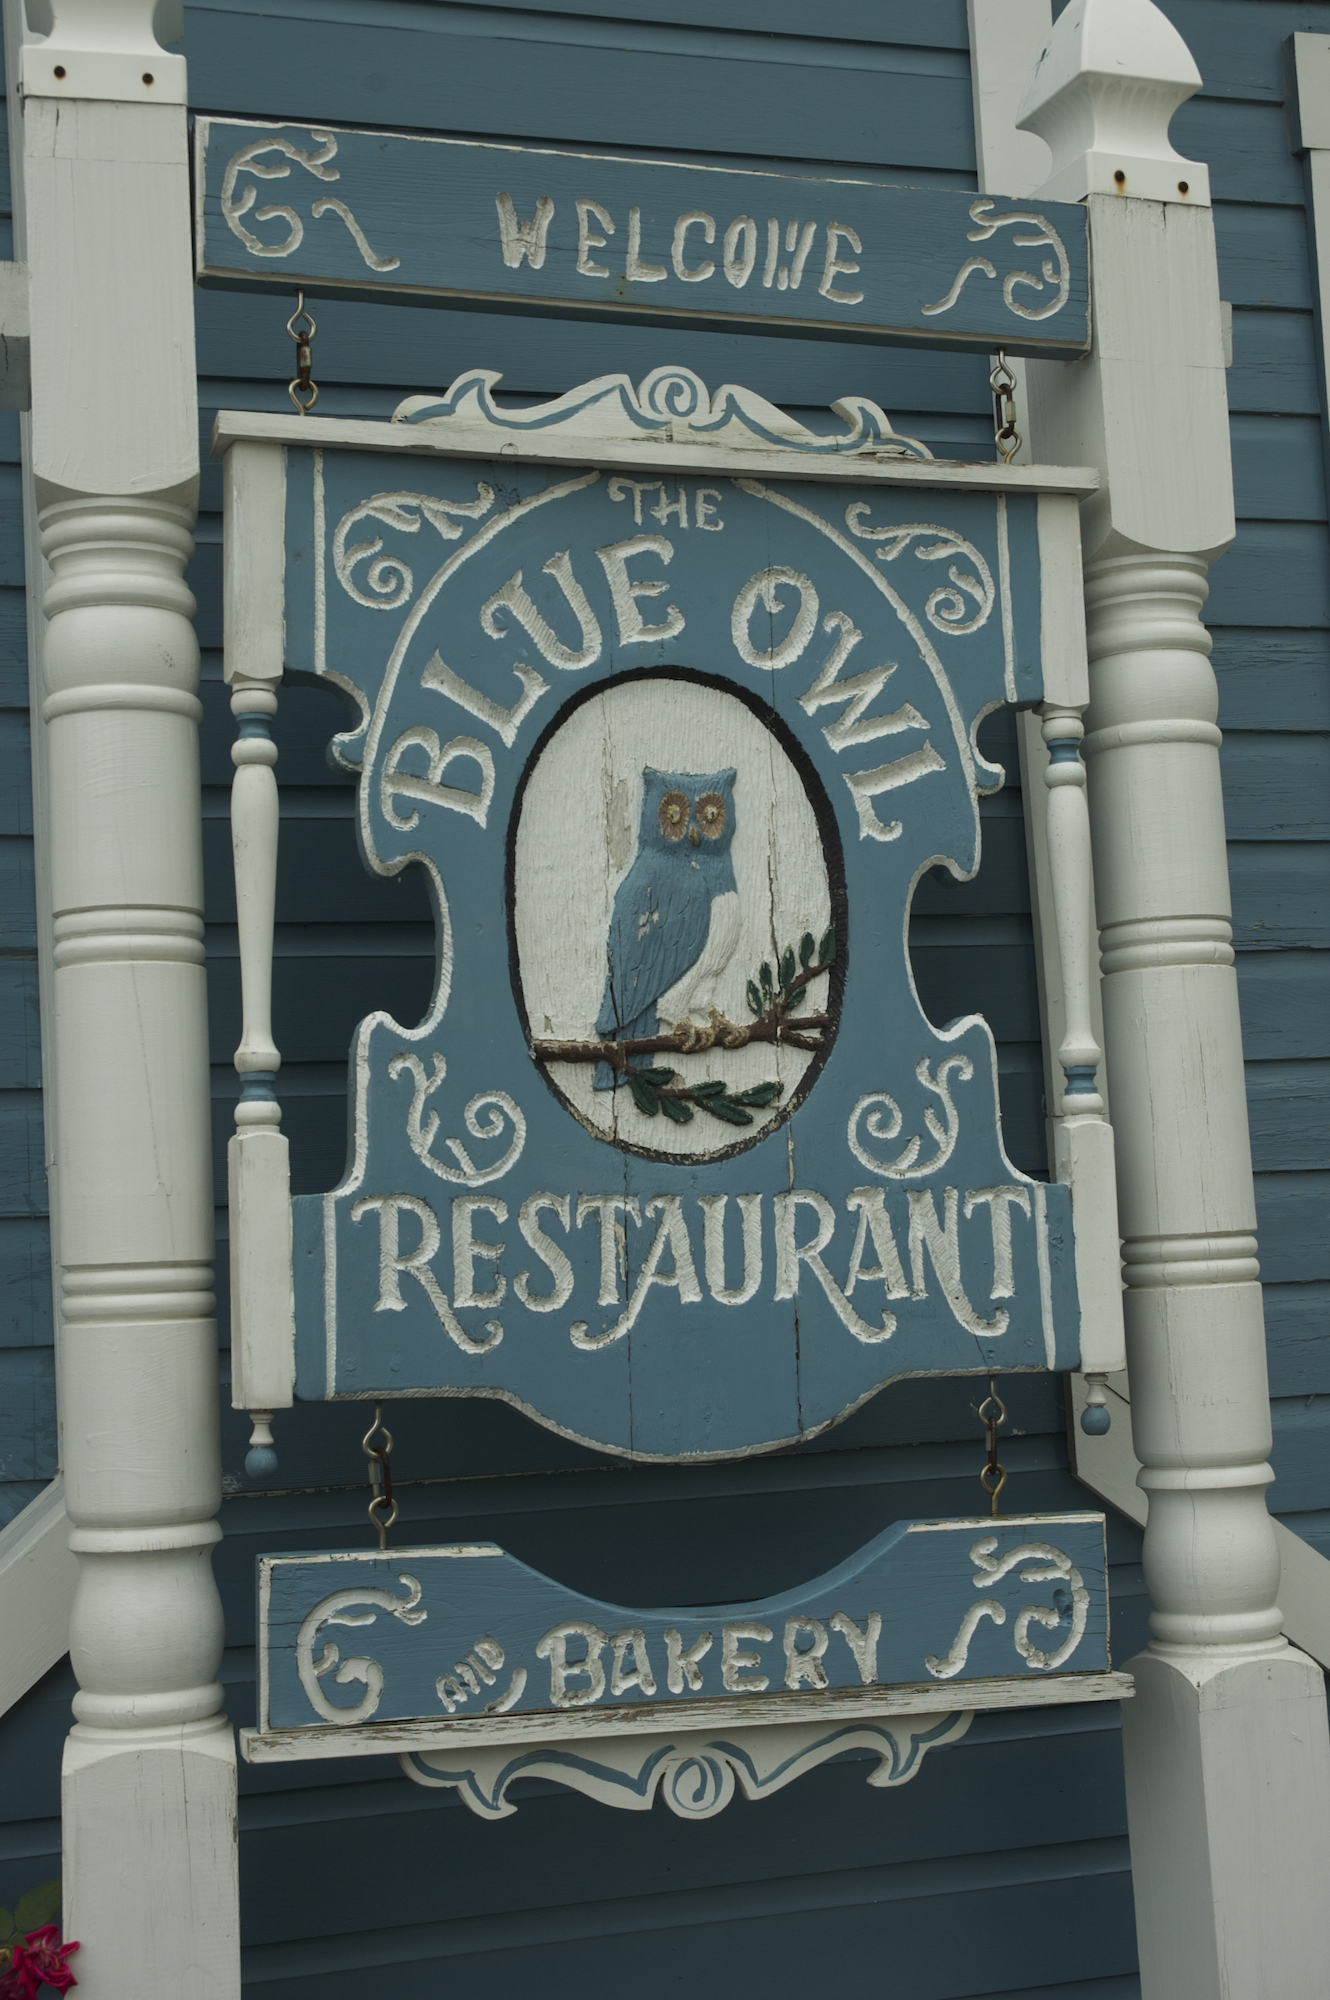 The Blue Owl Restaurant and BAKERY